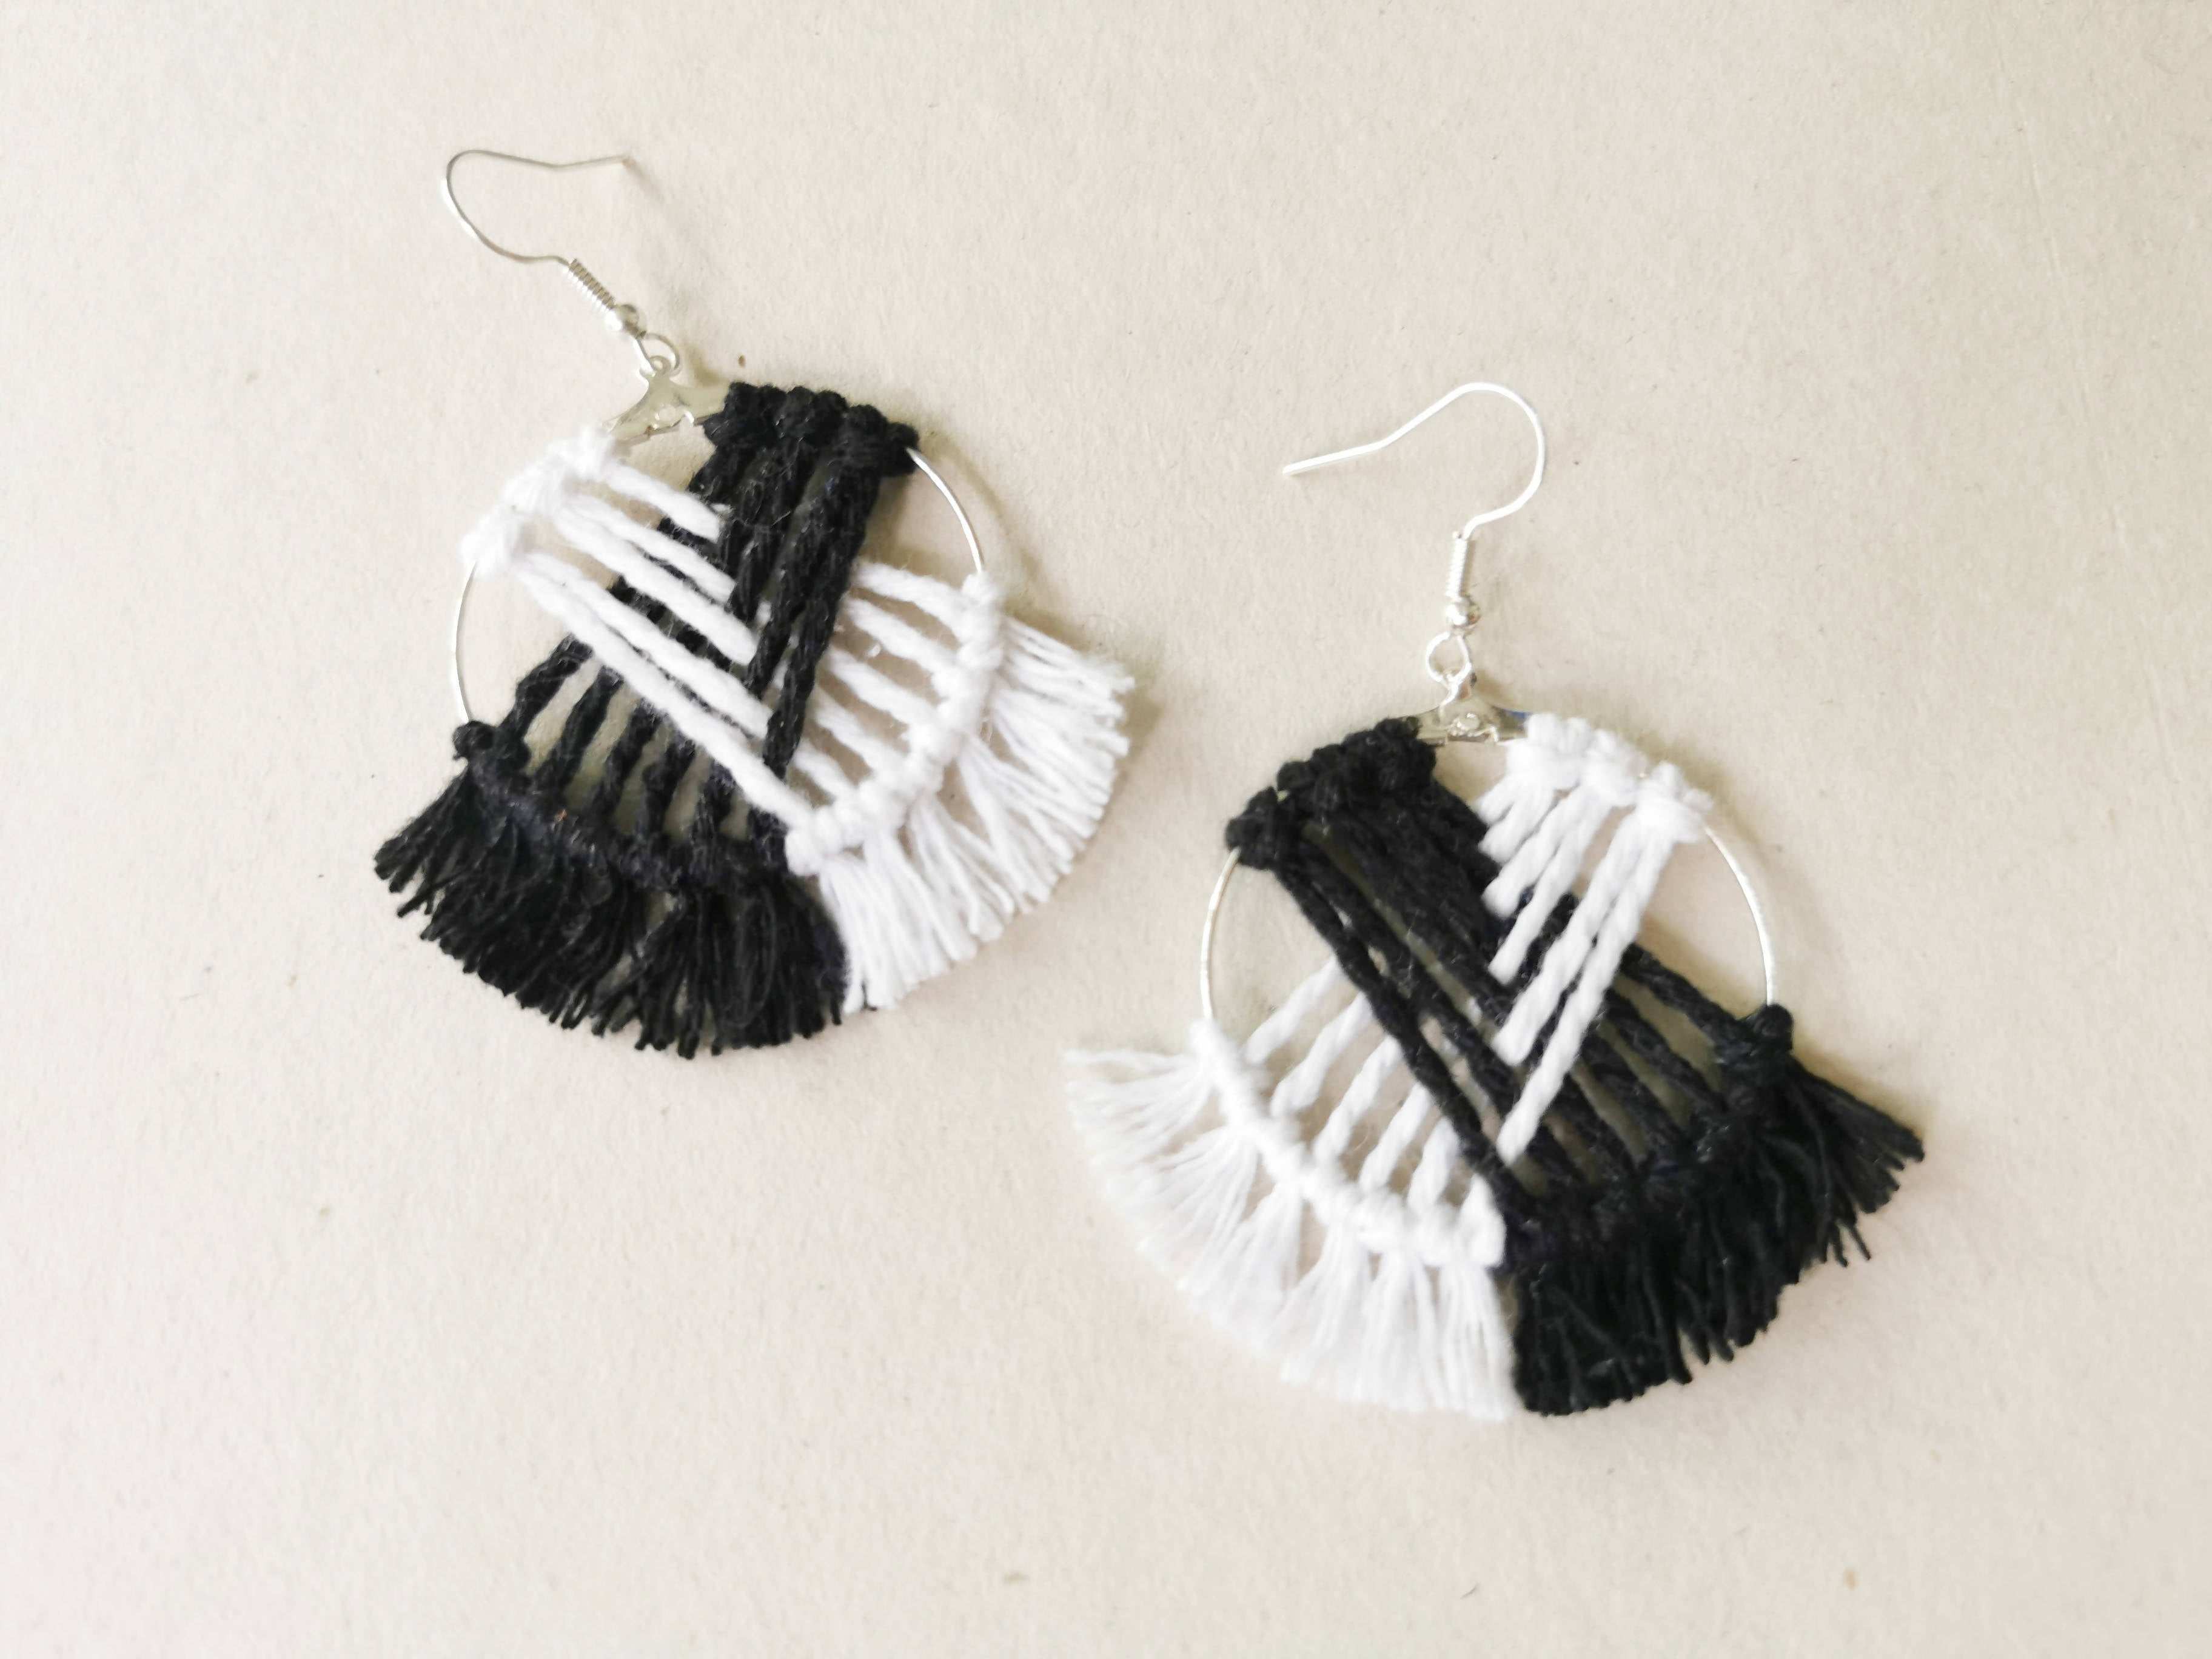 Intersect Macrame Hoop Earrings - Monochrome - Earrings - Playtime Rebs Studio - Naiise